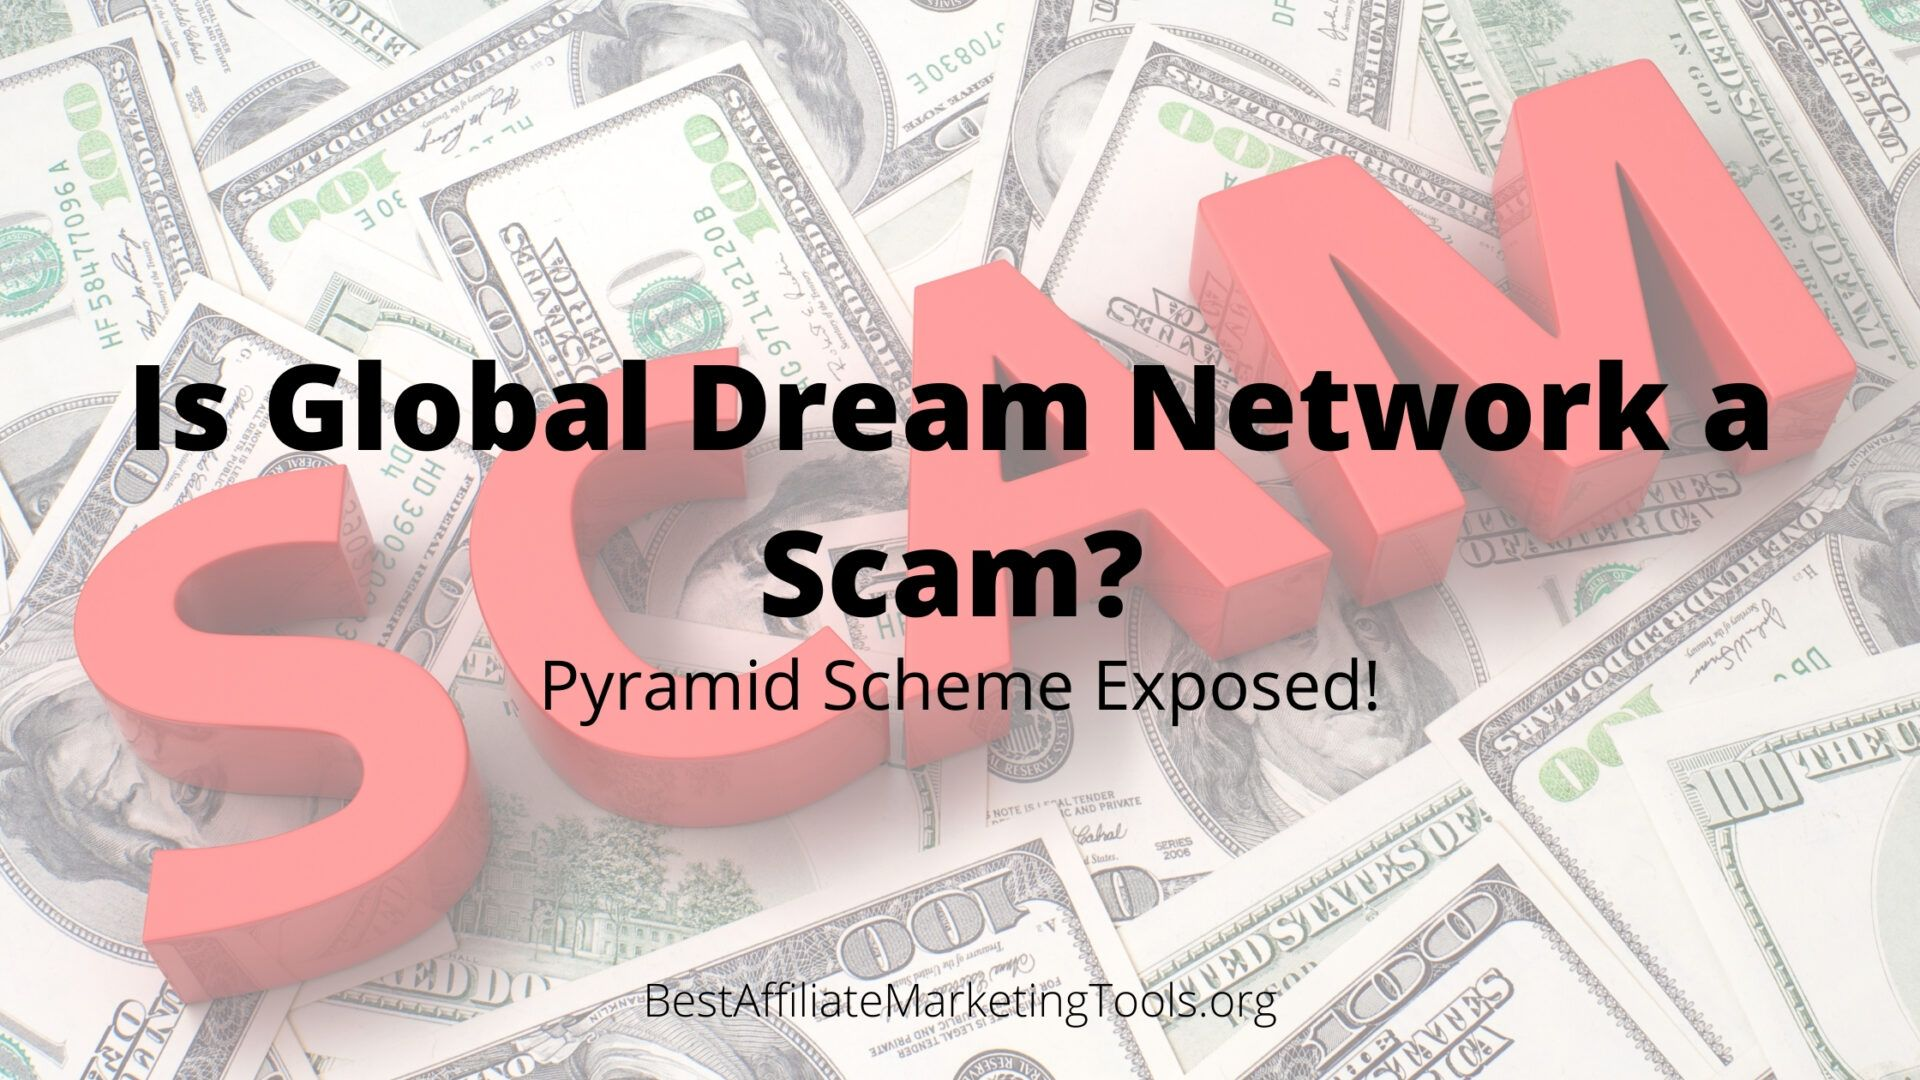 Is Global Dream Network a Scam